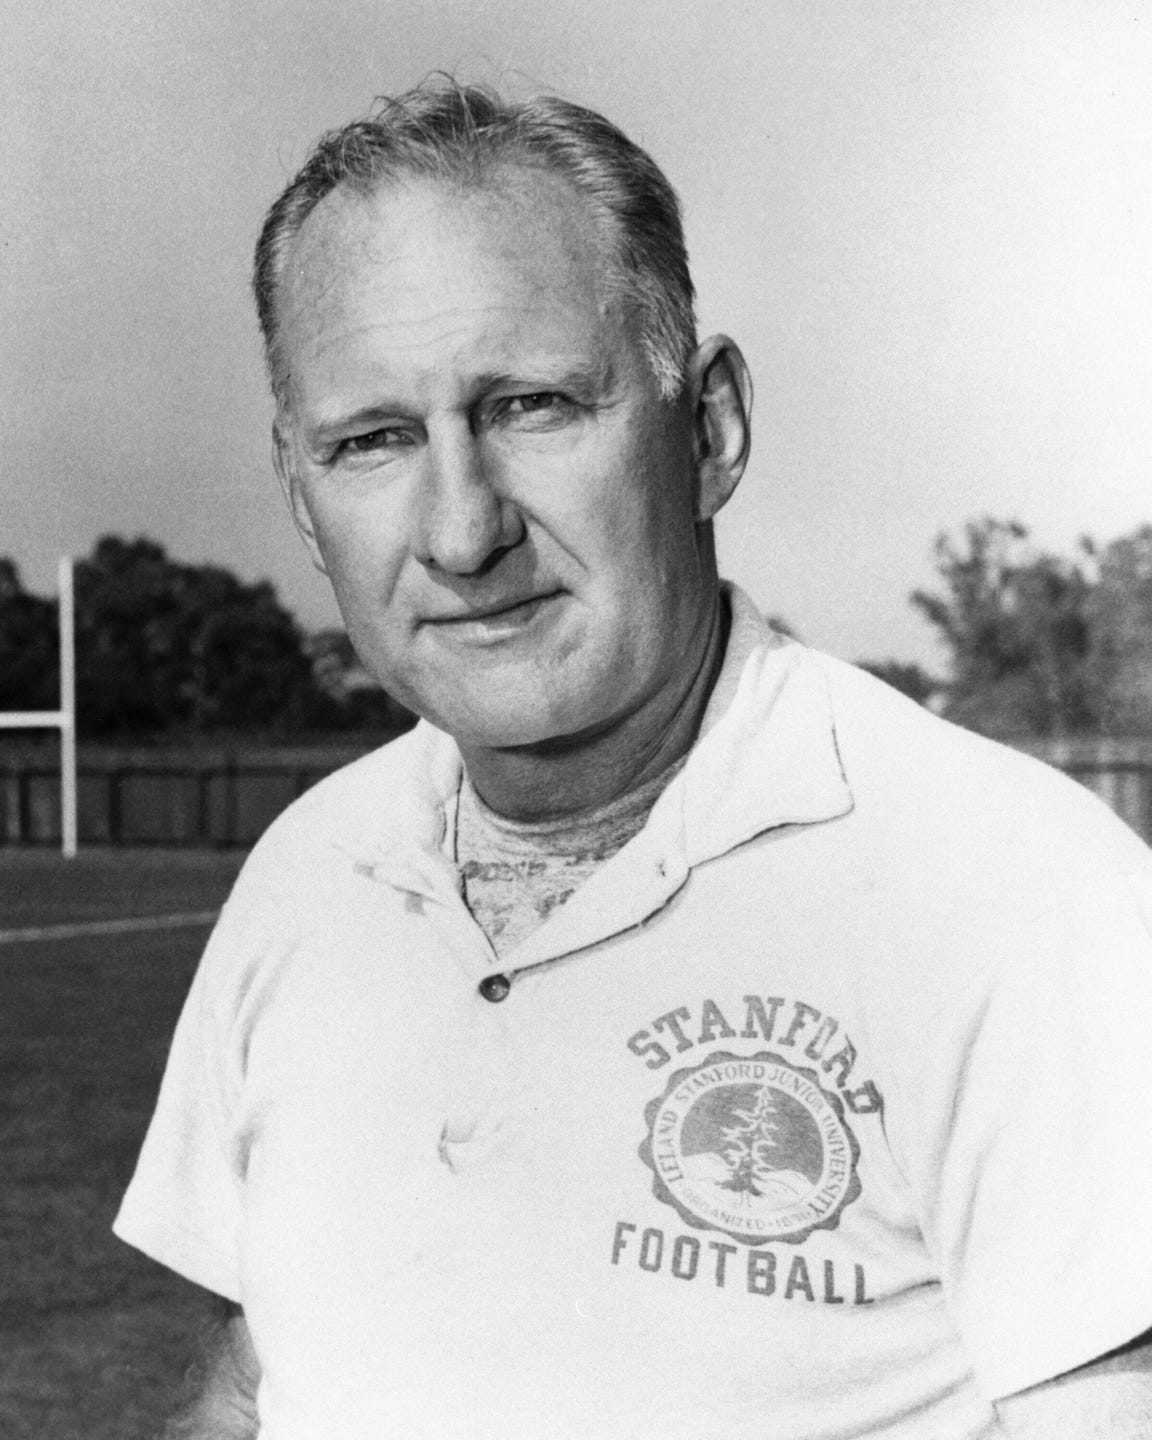 """William """"Dutch"""" Fehring starred in three sports at Purdue before becoming a coaching legend at Stanford."""